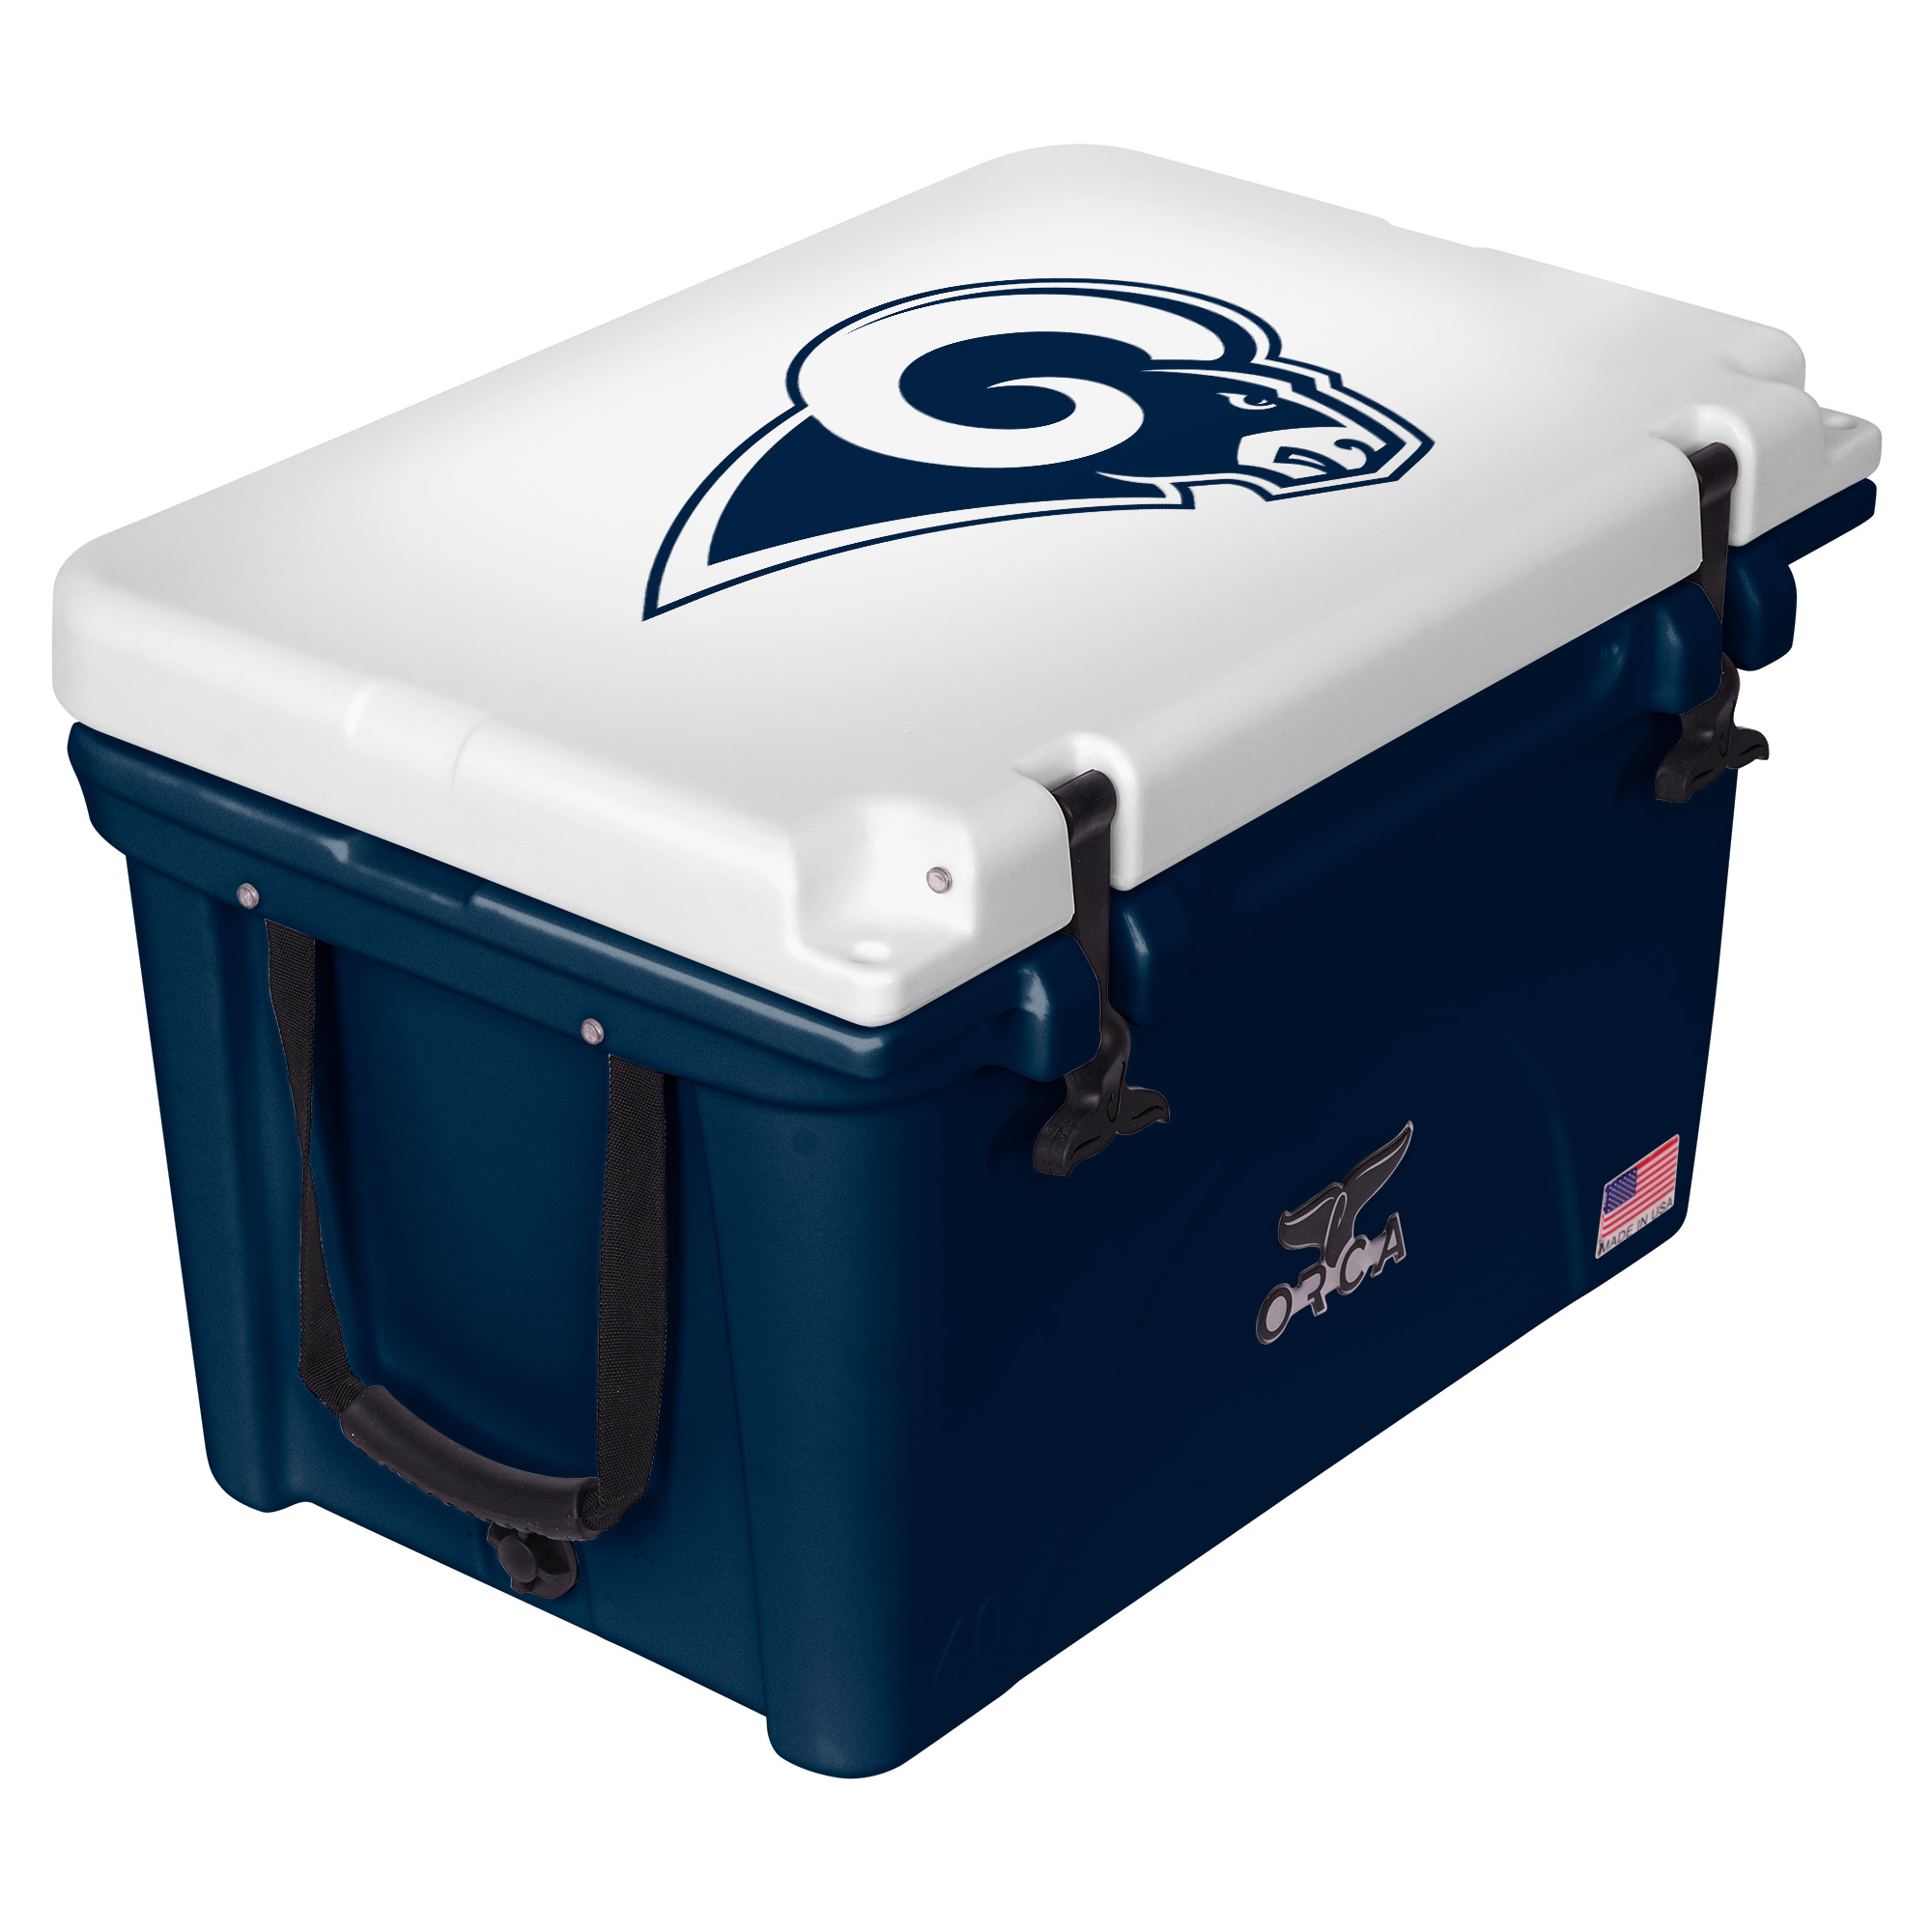 Los Angeles Rams ORCA 40-Quart Hard-Sided Cooler - Navy/White - No Size